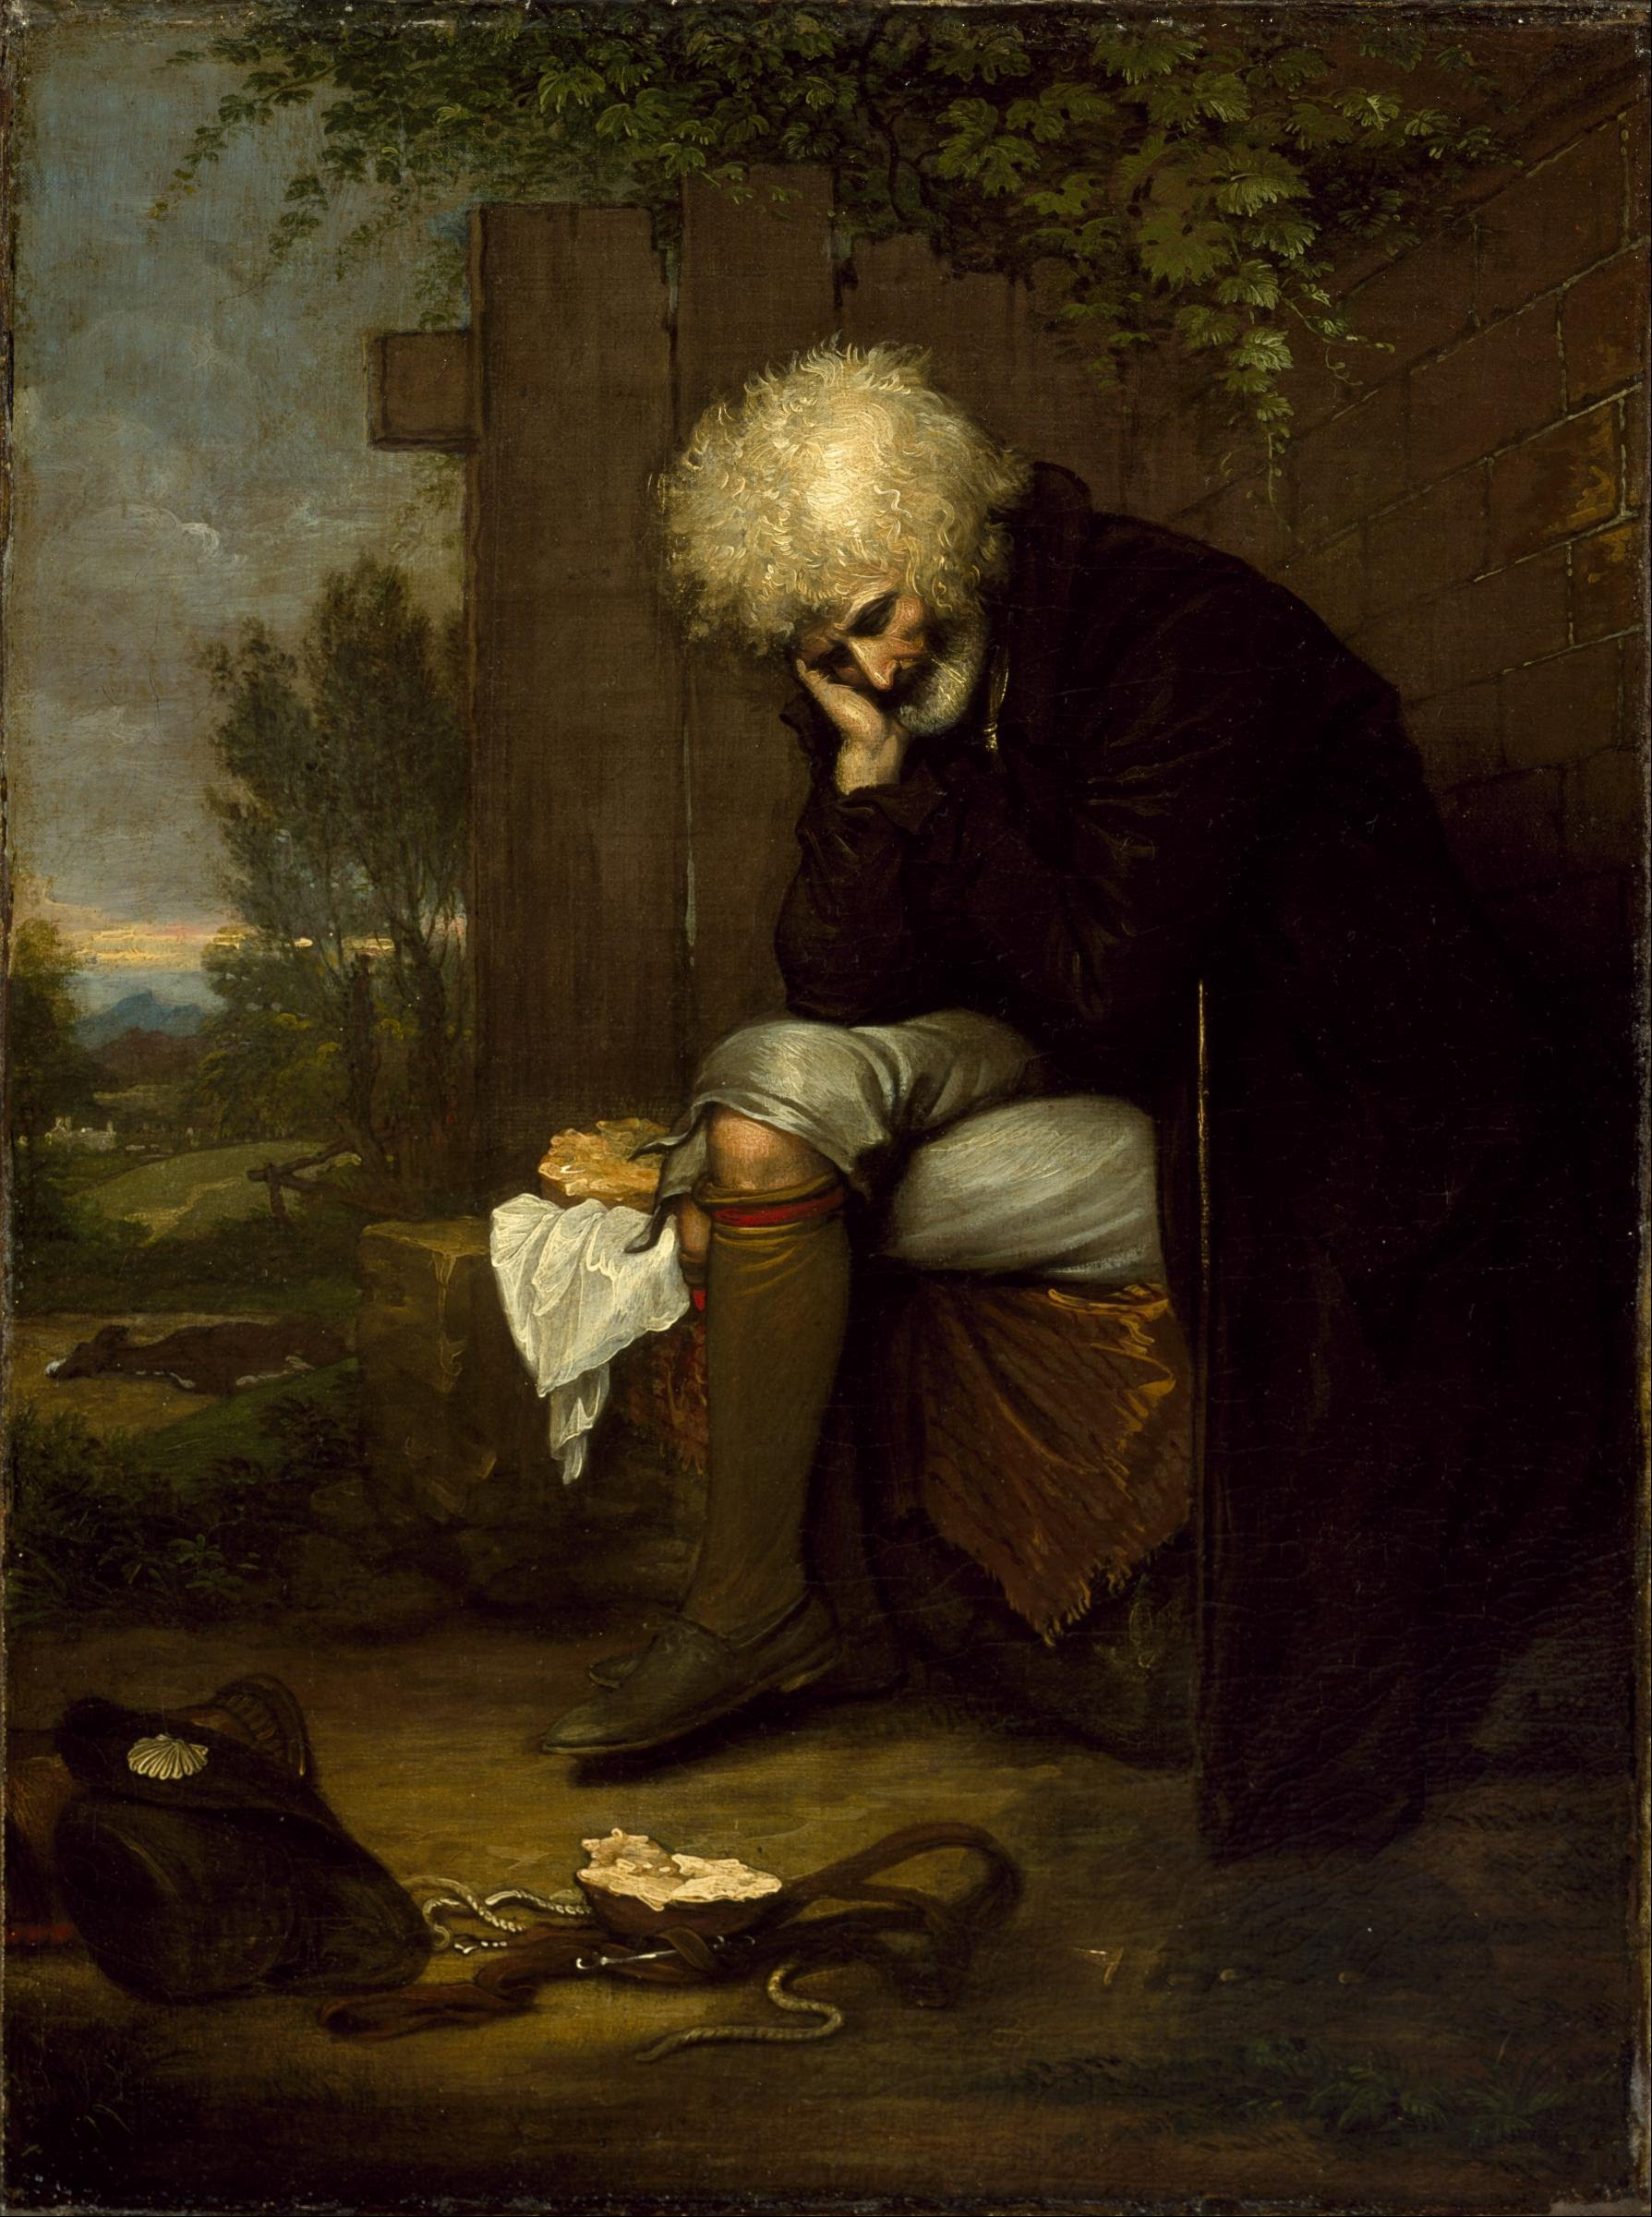 File:Benjamin West - The Pilgrim Mourning His Dead Ass - Google Art  Project.jpg - Wikimedia Commons